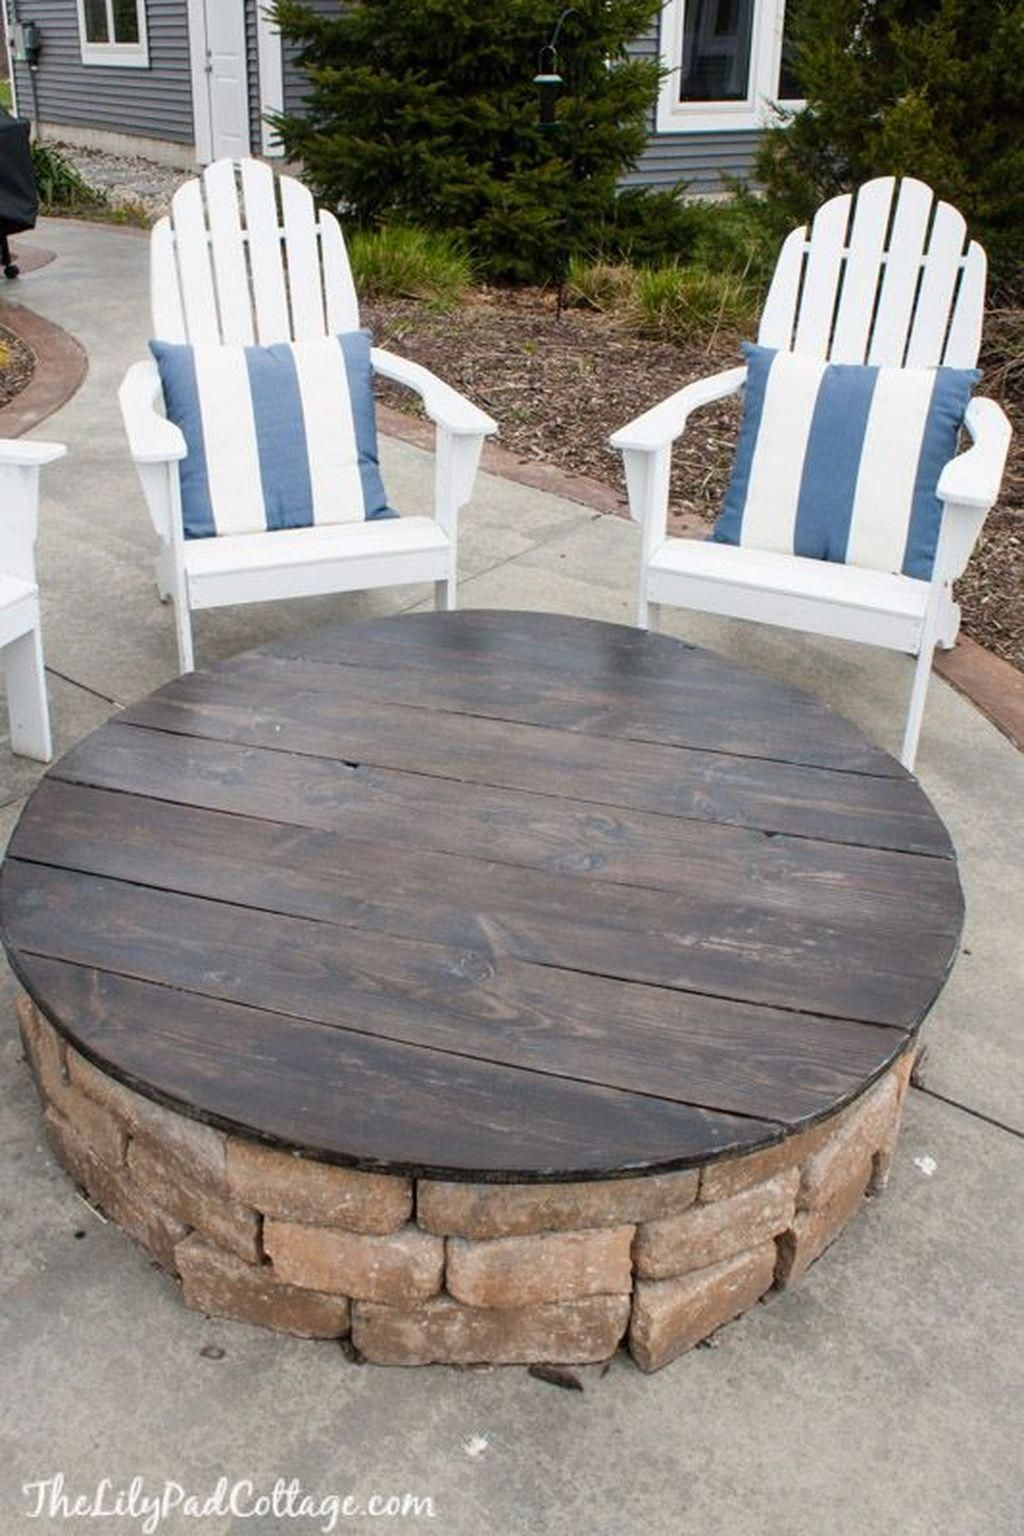 Photo of Outdoor Fire Pit